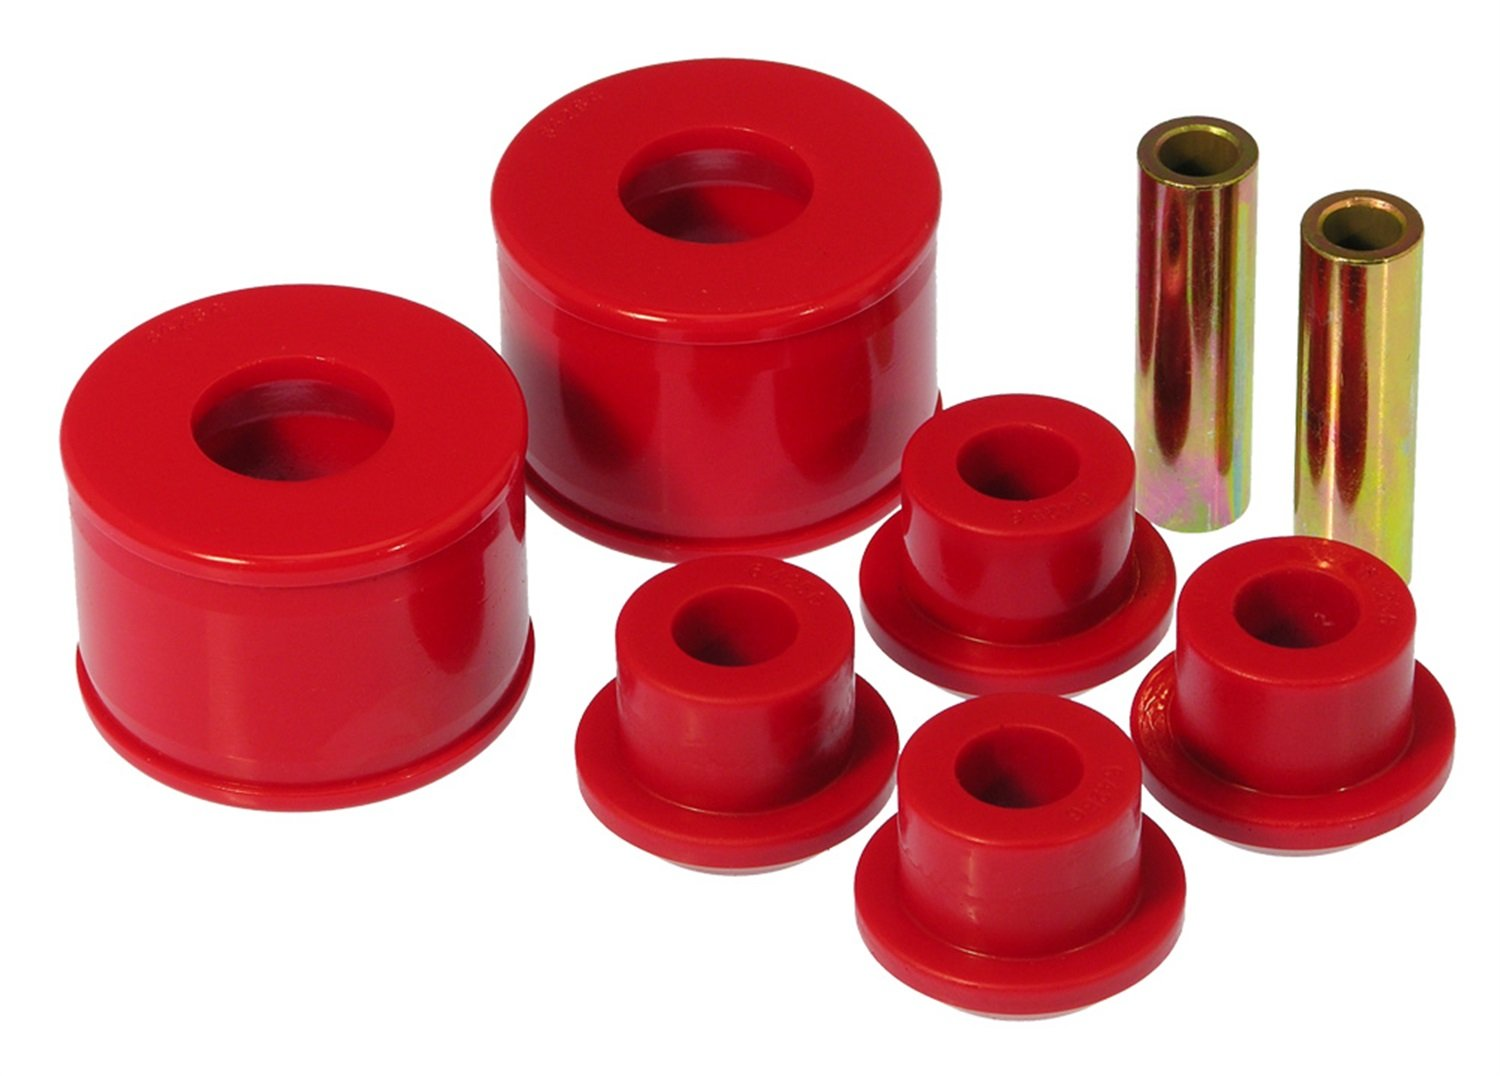 Prothane 8-316 Red Rear Trailing Arm Bushing Kit by Prothane